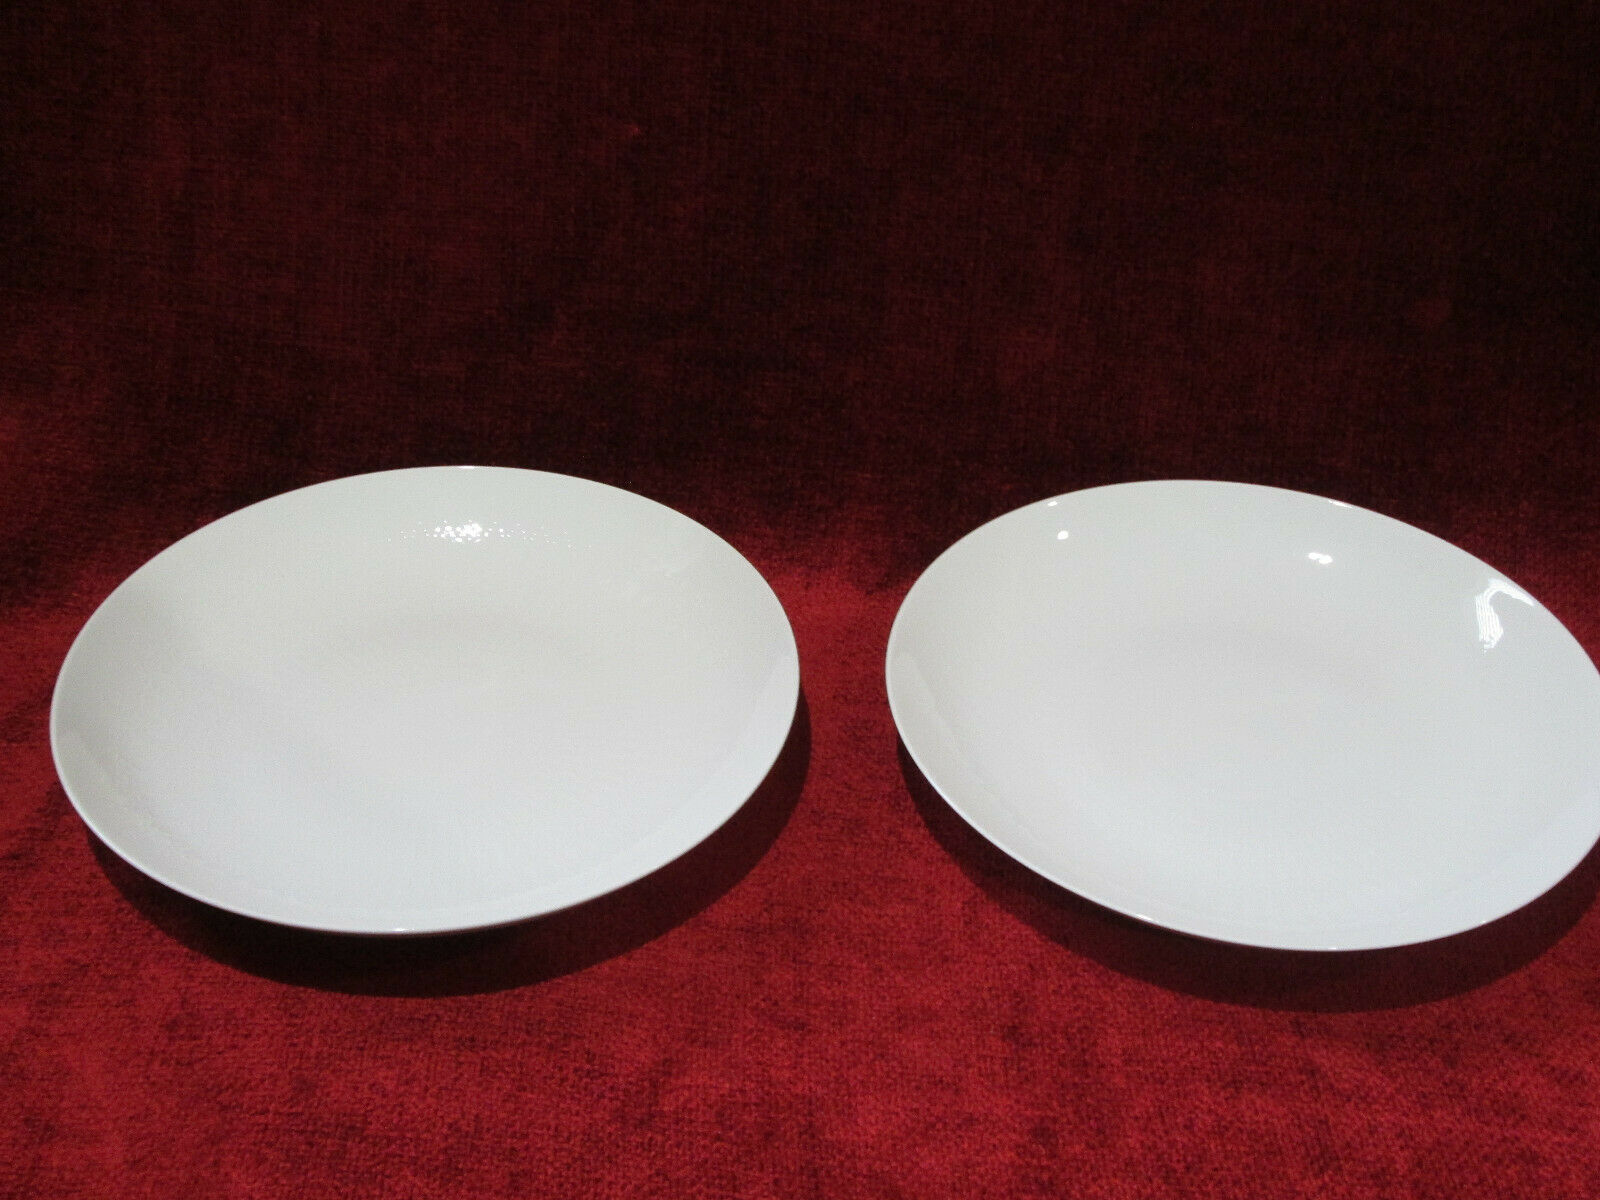 "Primary image for Rosenthal Romance set of 2 soup bowls 8 5/8"" x 1 1/4"" tall"